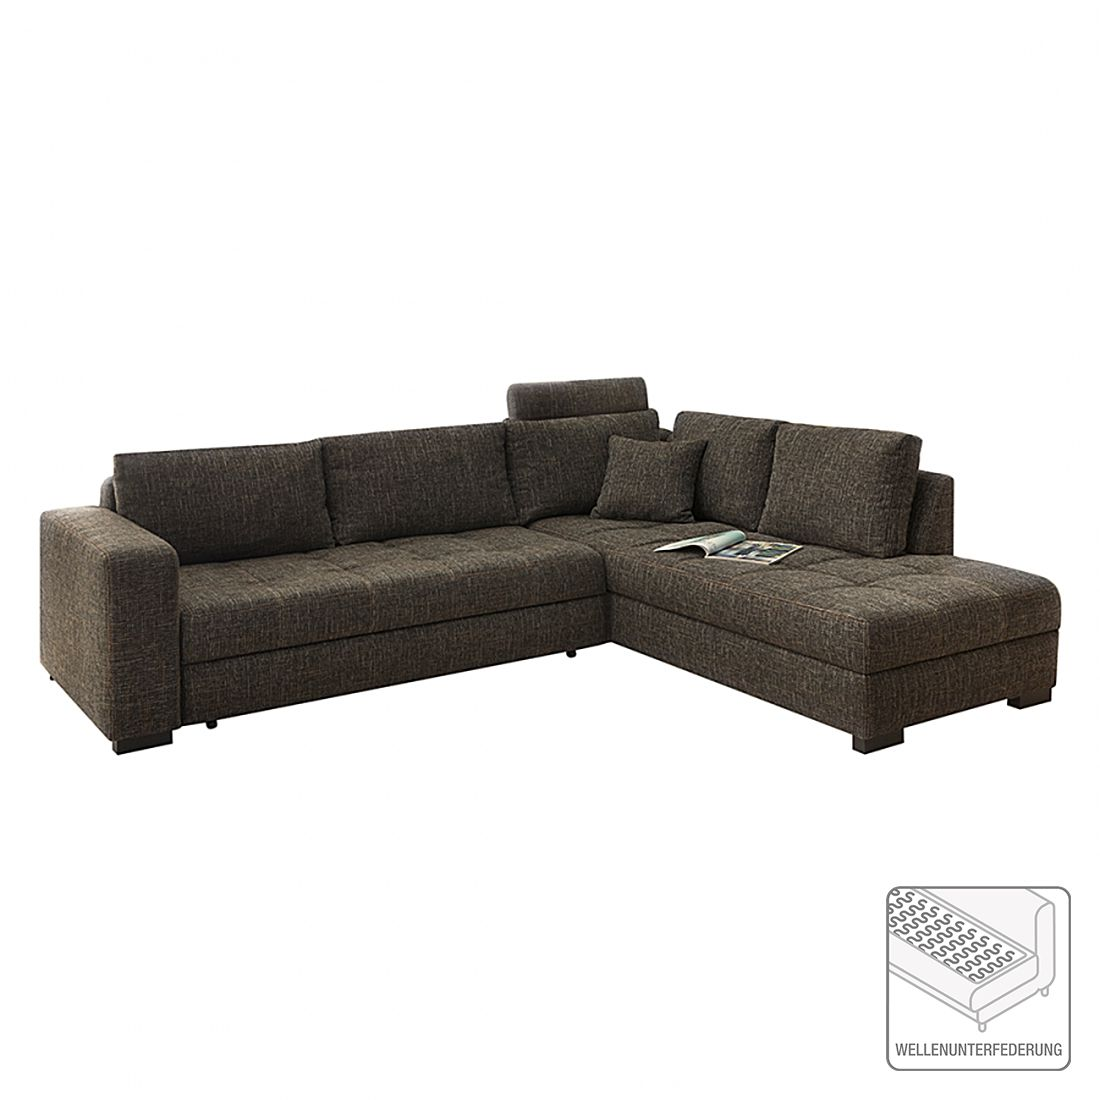 ecksofa willmar mit schlaffunktion strukturstoff braun. Black Bedroom Furniture Sets. Home Design Ideas